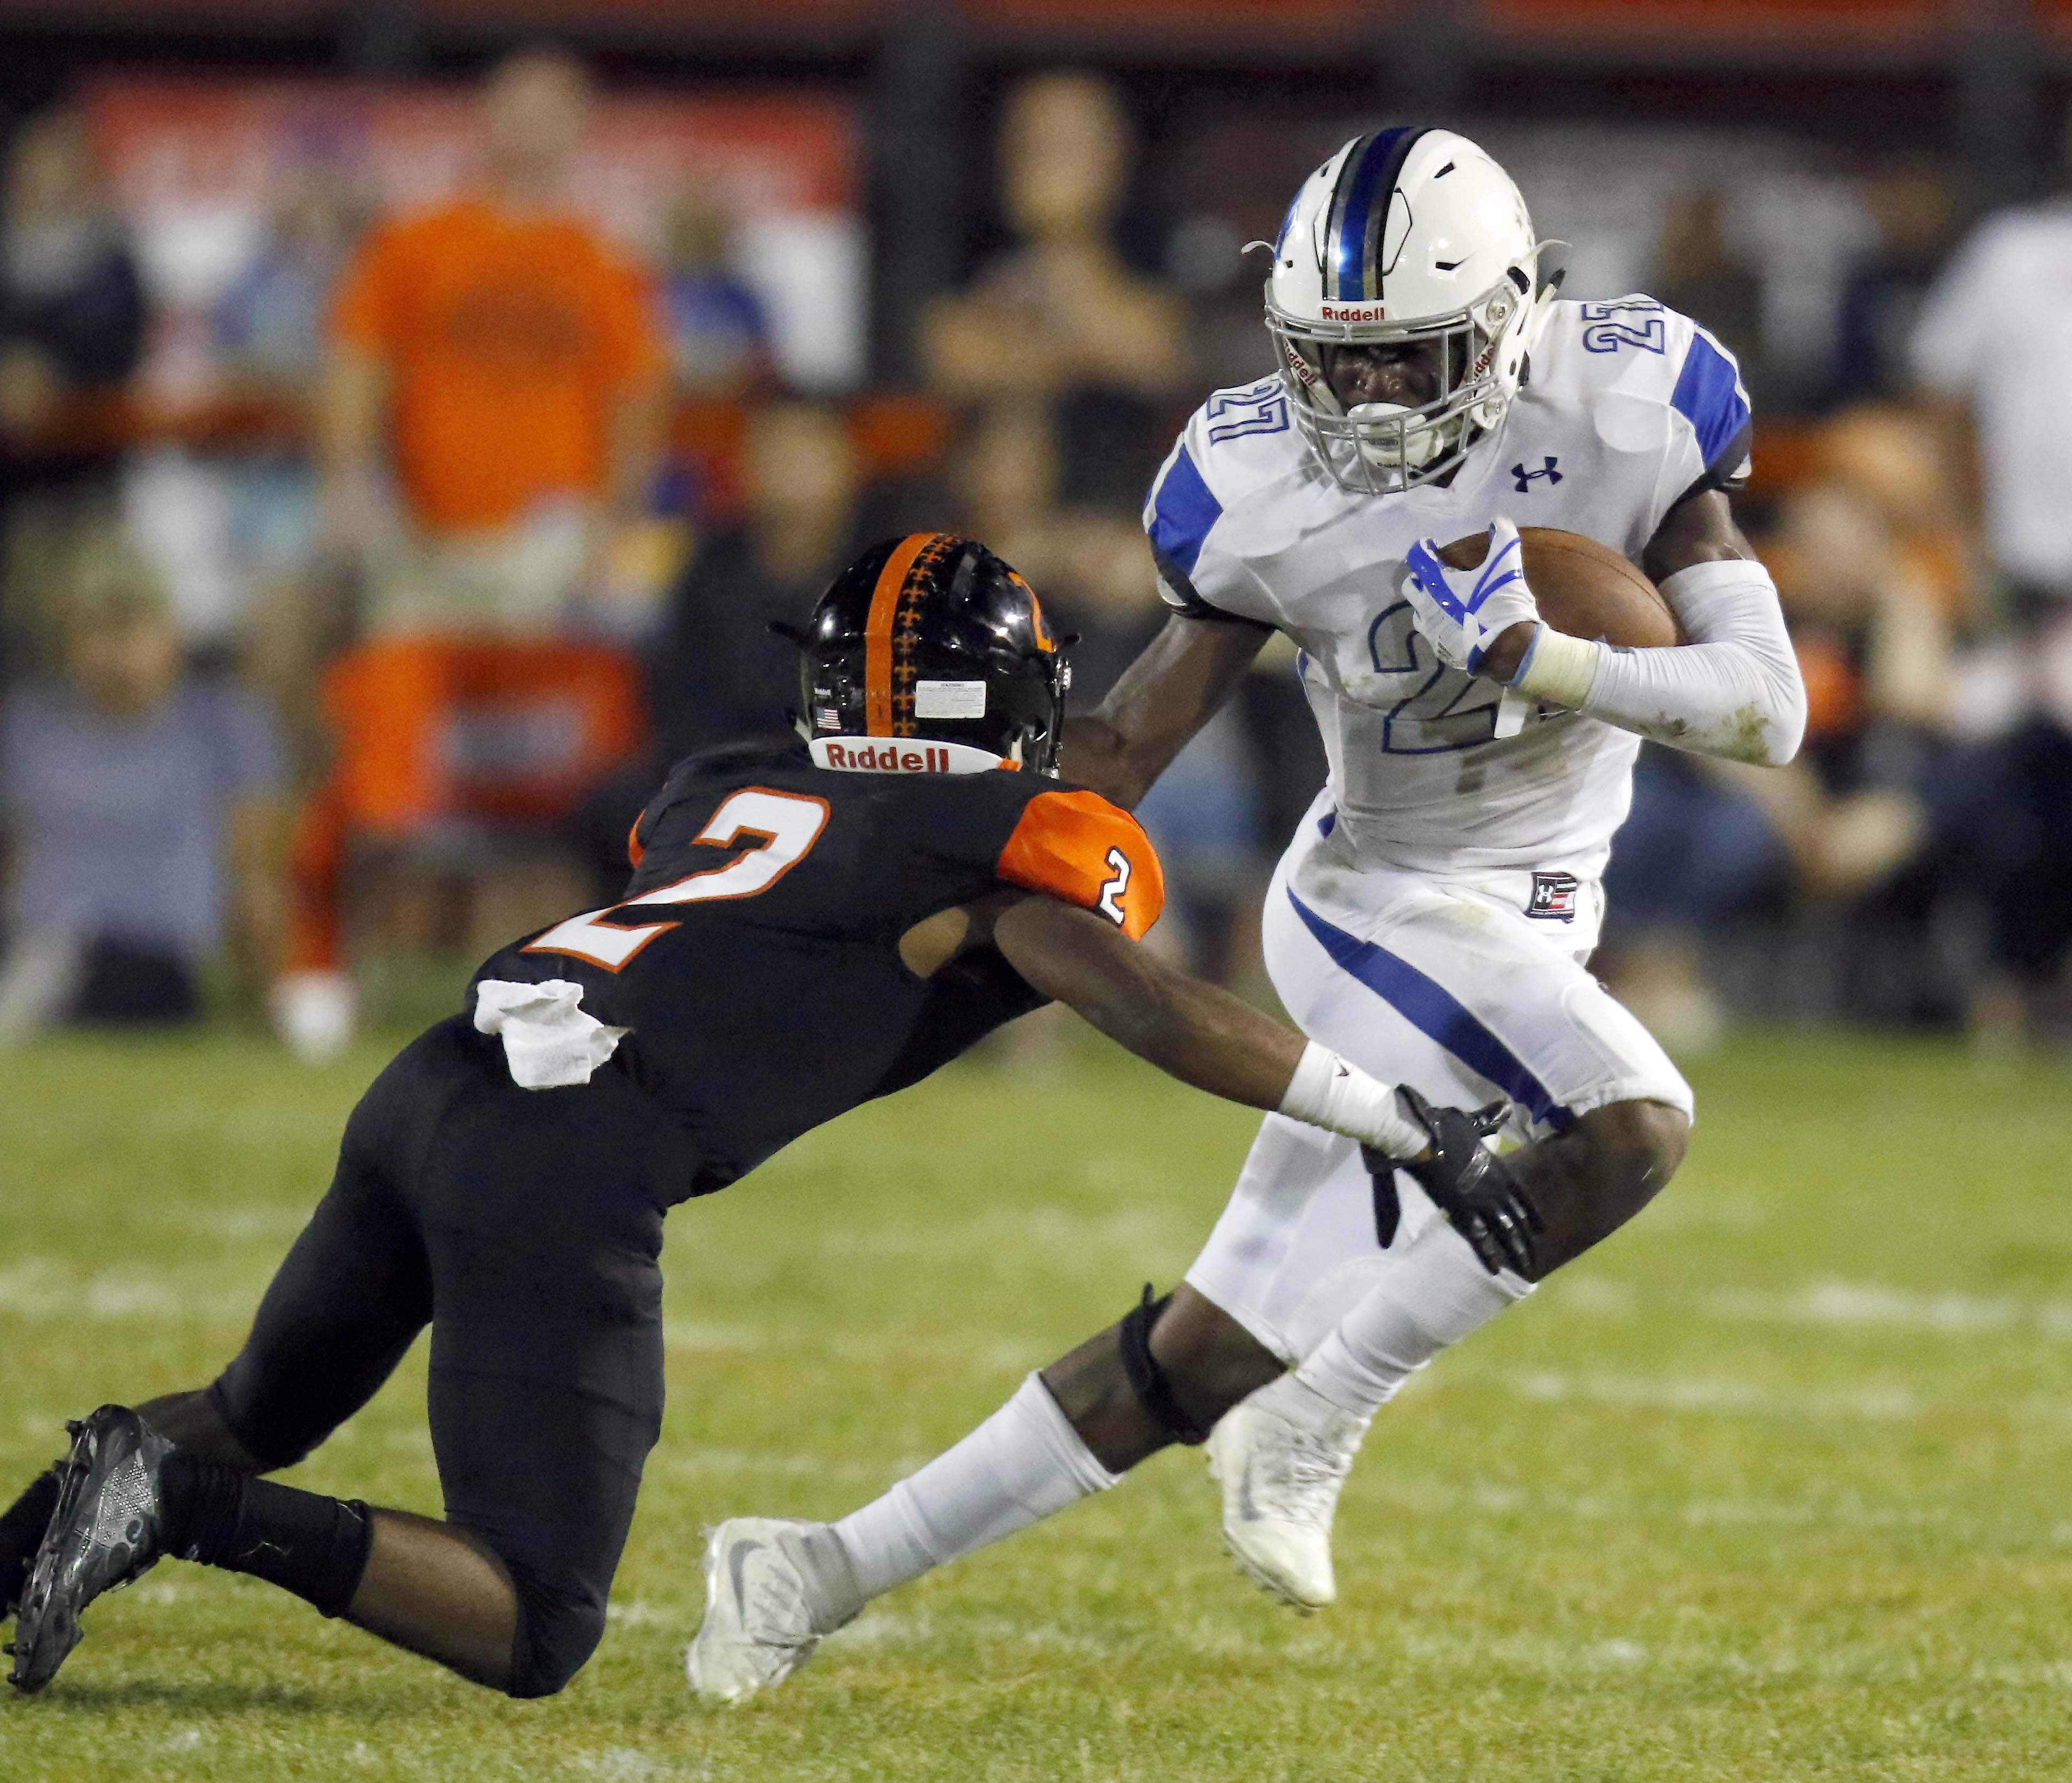 St. Charles North's Tyler Nubin (27) moves past St. Charles East's Yalon Rogers (2) Friday during St. Charles North at St. Charles East football.